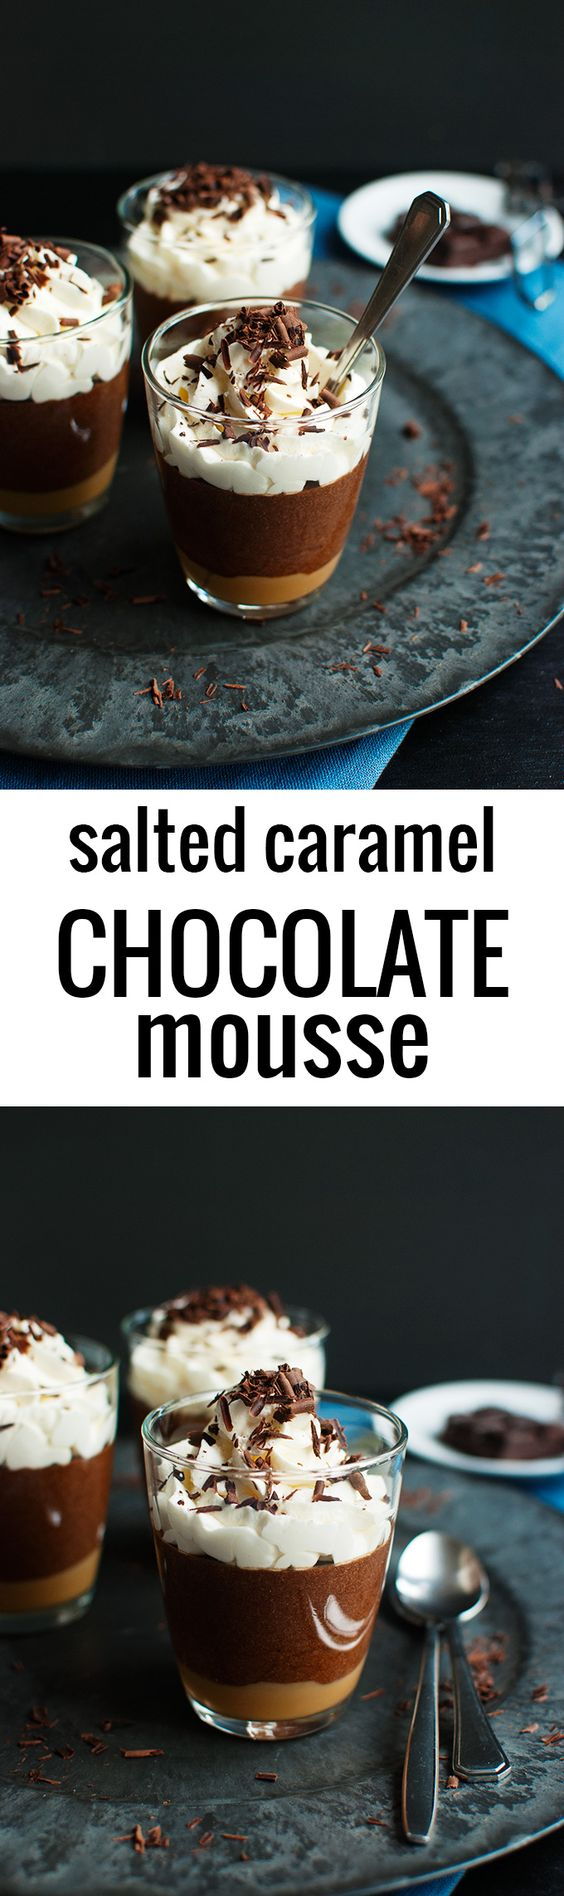 Salted Caramel Chocolate Mousse - A layer of salted caramel topped with a delicious dark chocolate mousse. The best dessert ever and really easy to make! | thetoughcookie.com